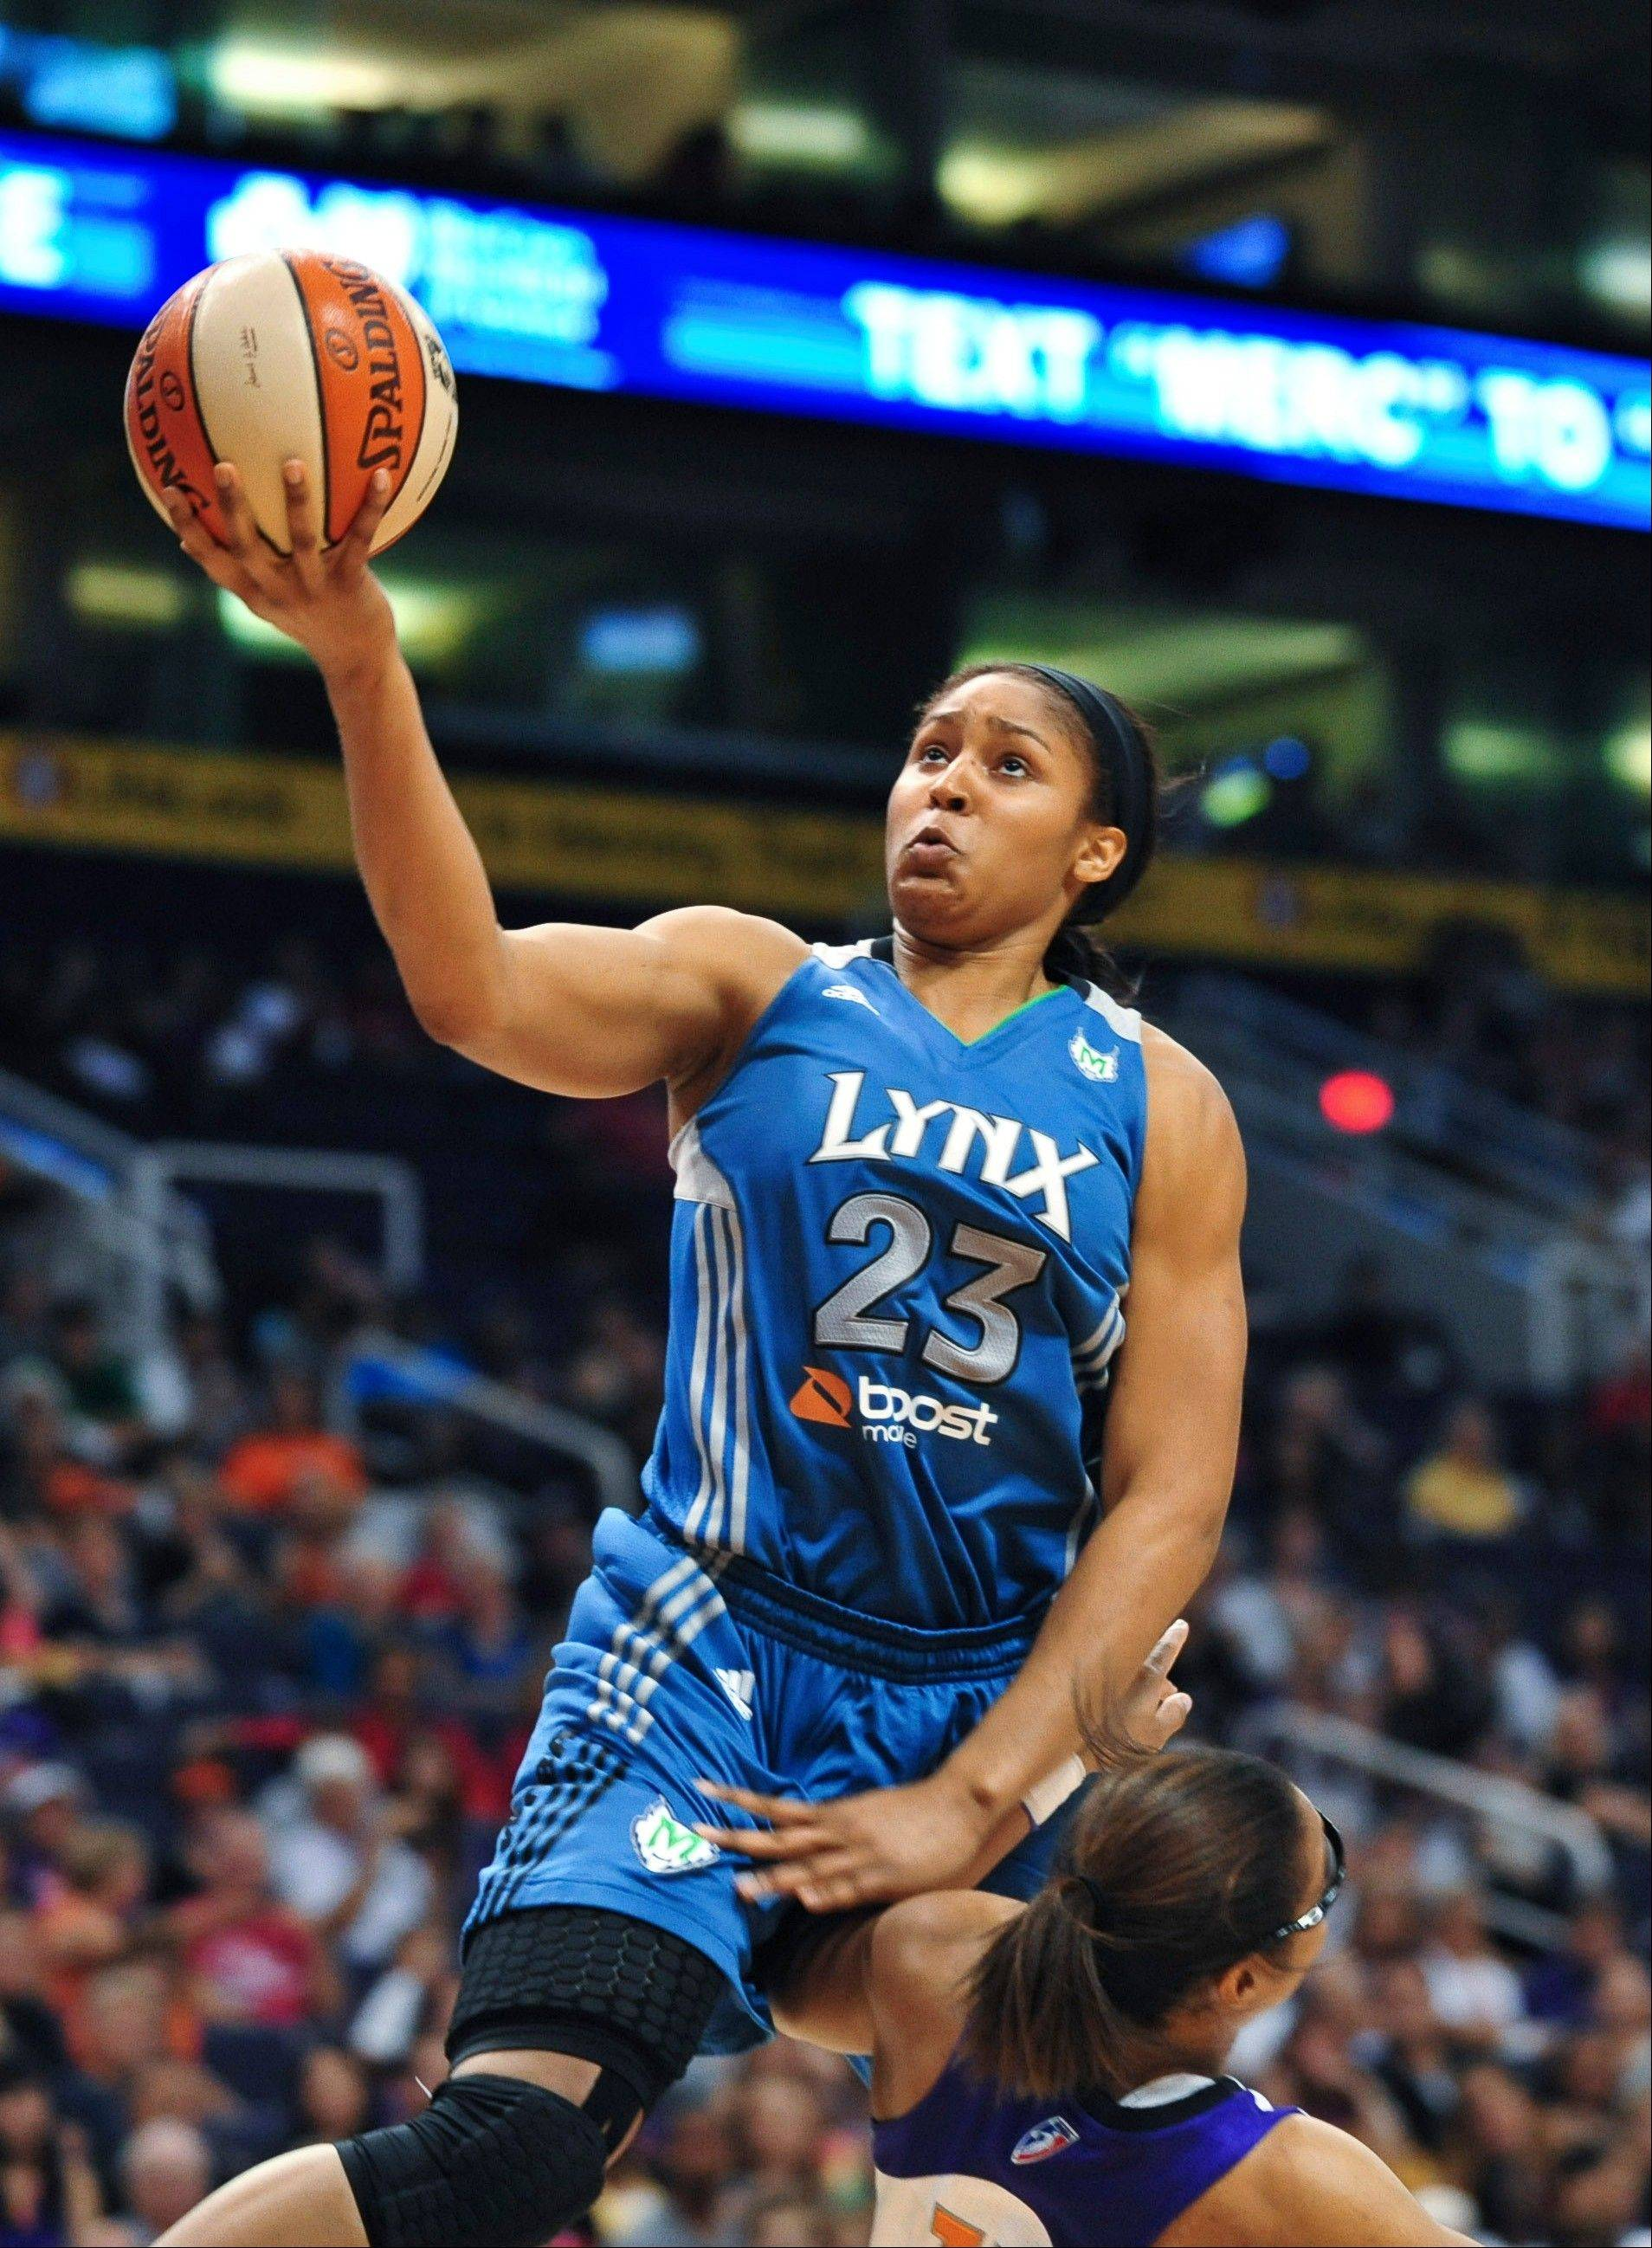 Maya Moore was chosen as the WNBA rookie of the year on Friday, Sept. 16, 2011.